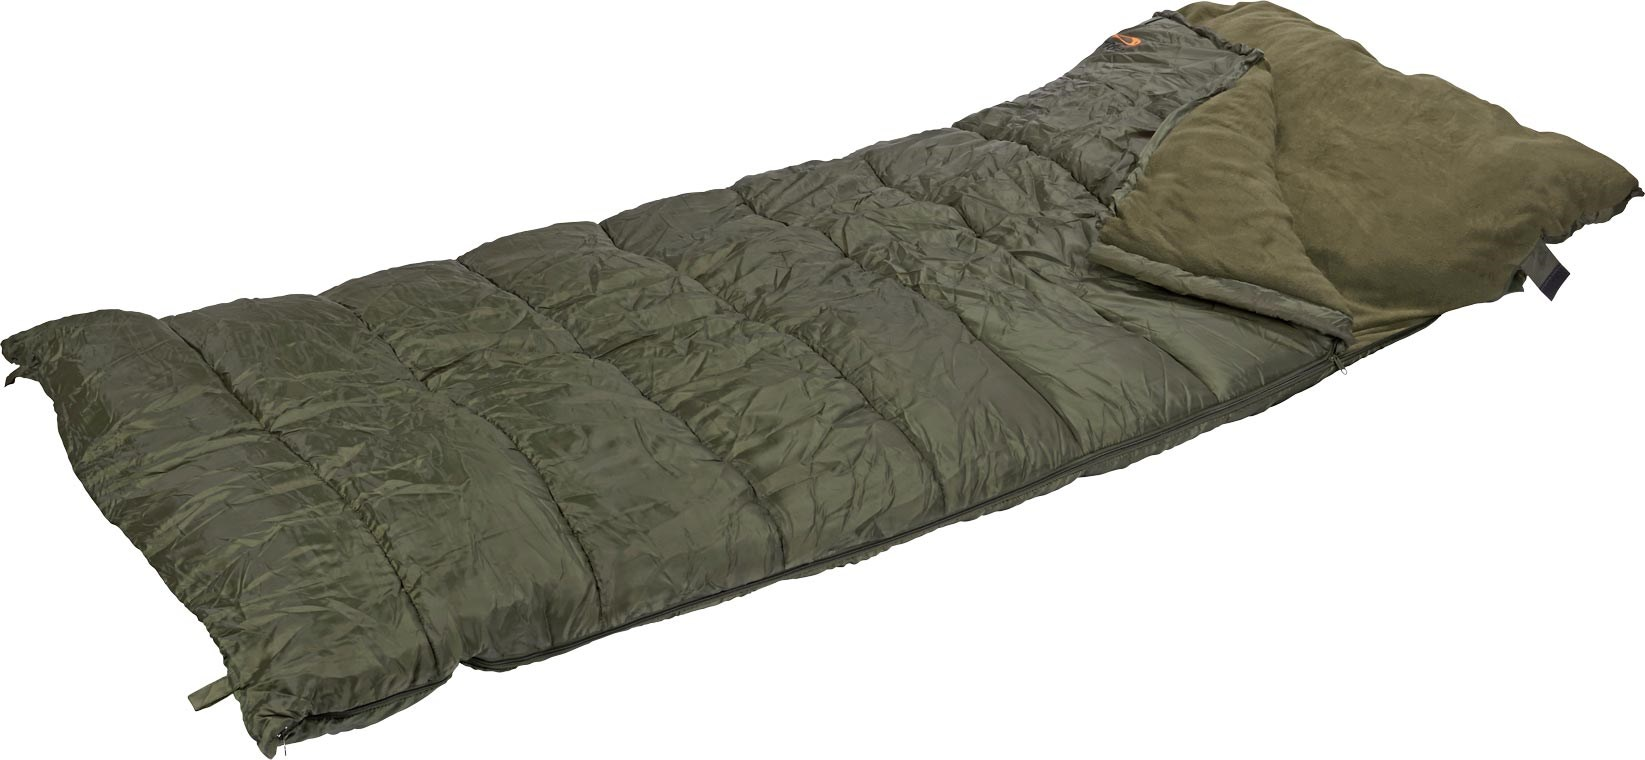 TFGear Chill Out 4 Season Sleeping Bag Standard